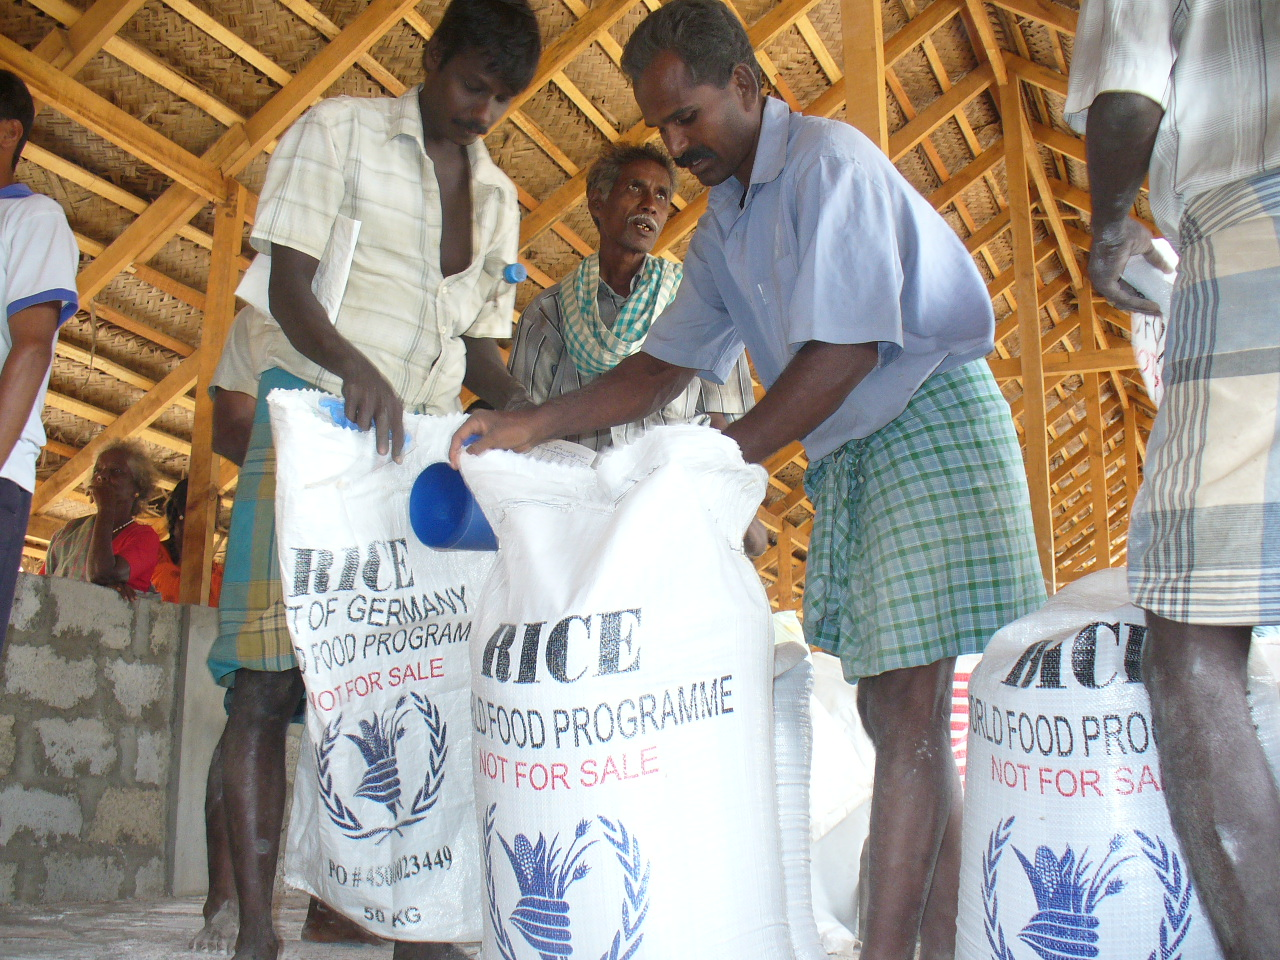 IDPs receiving food assistance at Menik Farm outside the northern Sri Lankan town of Vavuniya